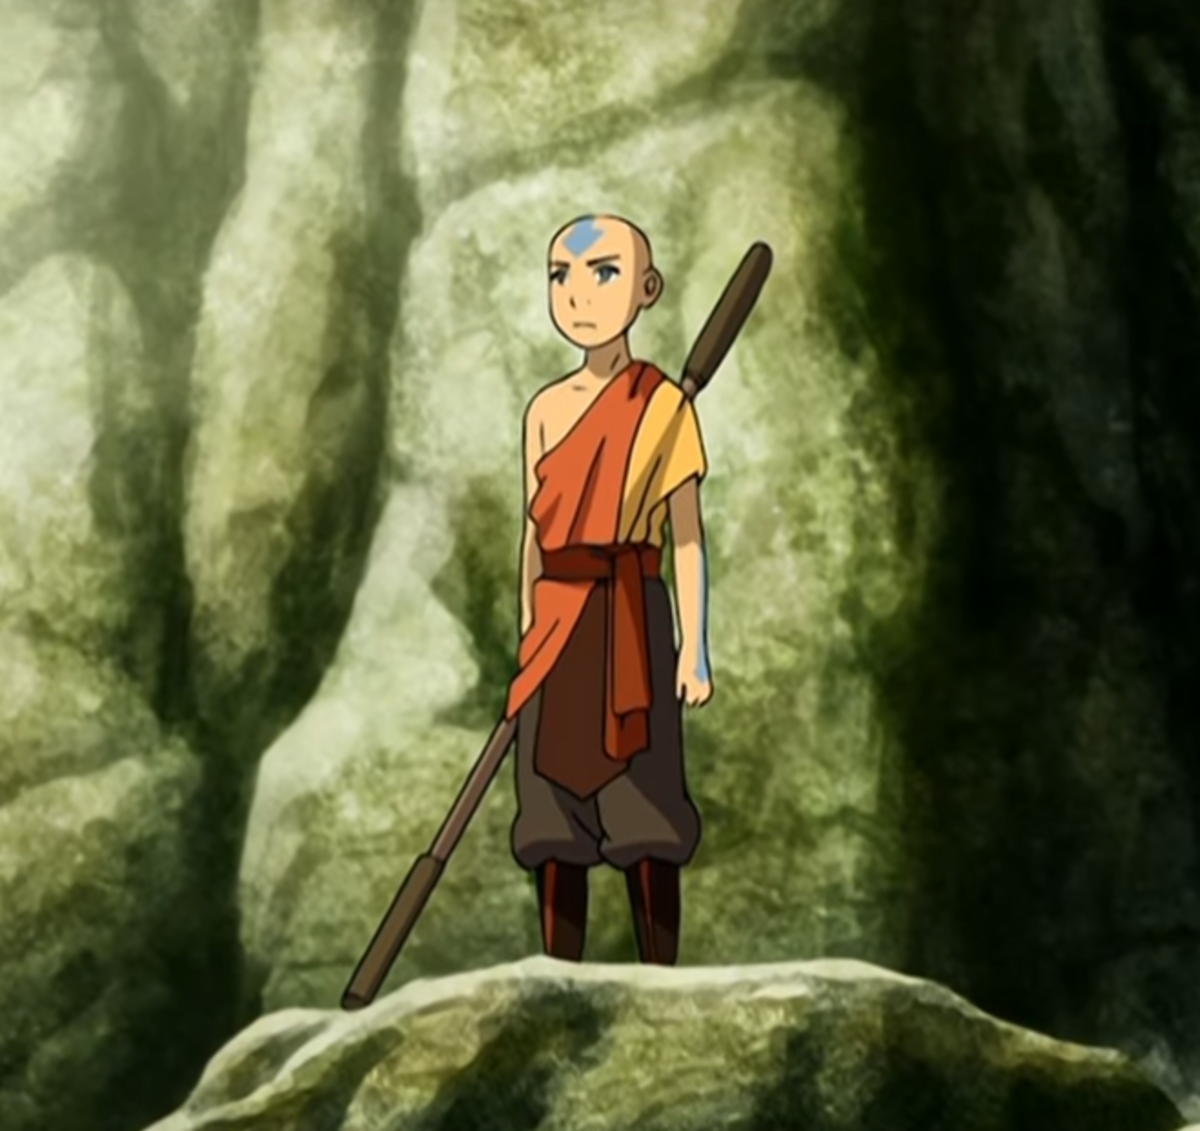 Aang's new outfit